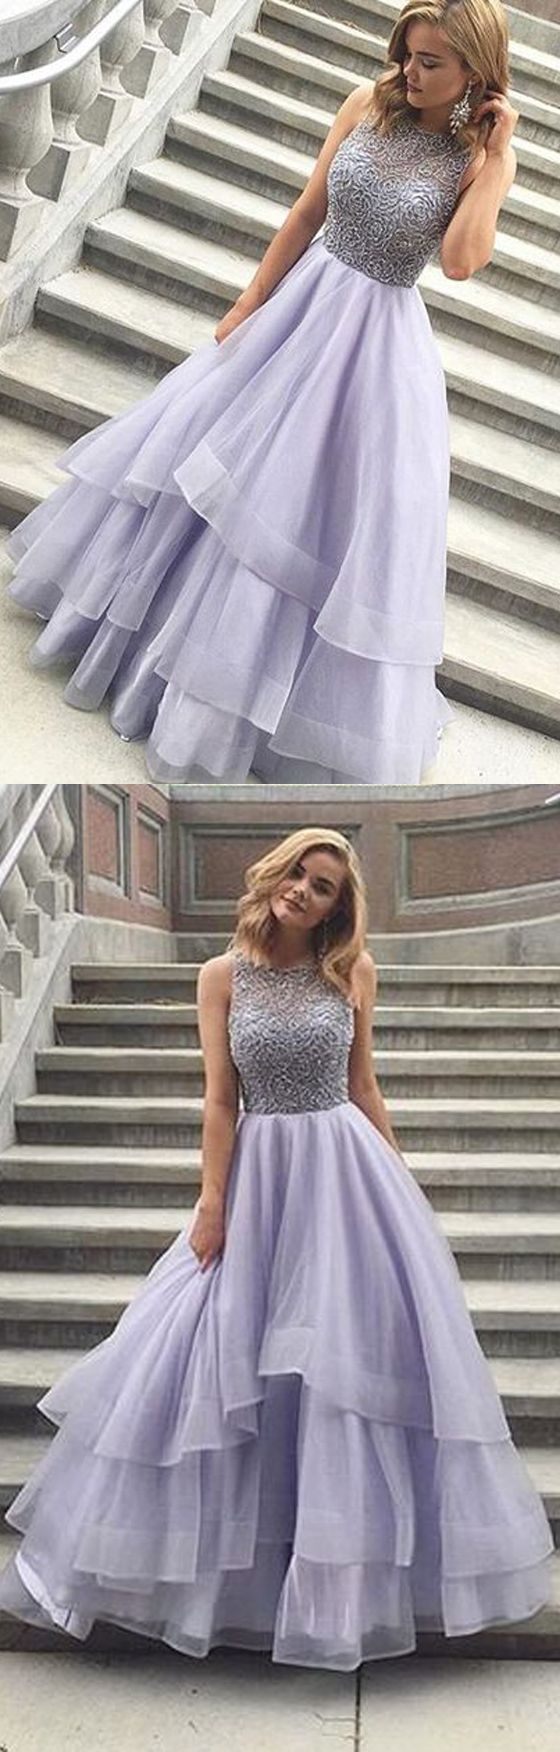 best prom images on pinterest make up looks beauty makeup and